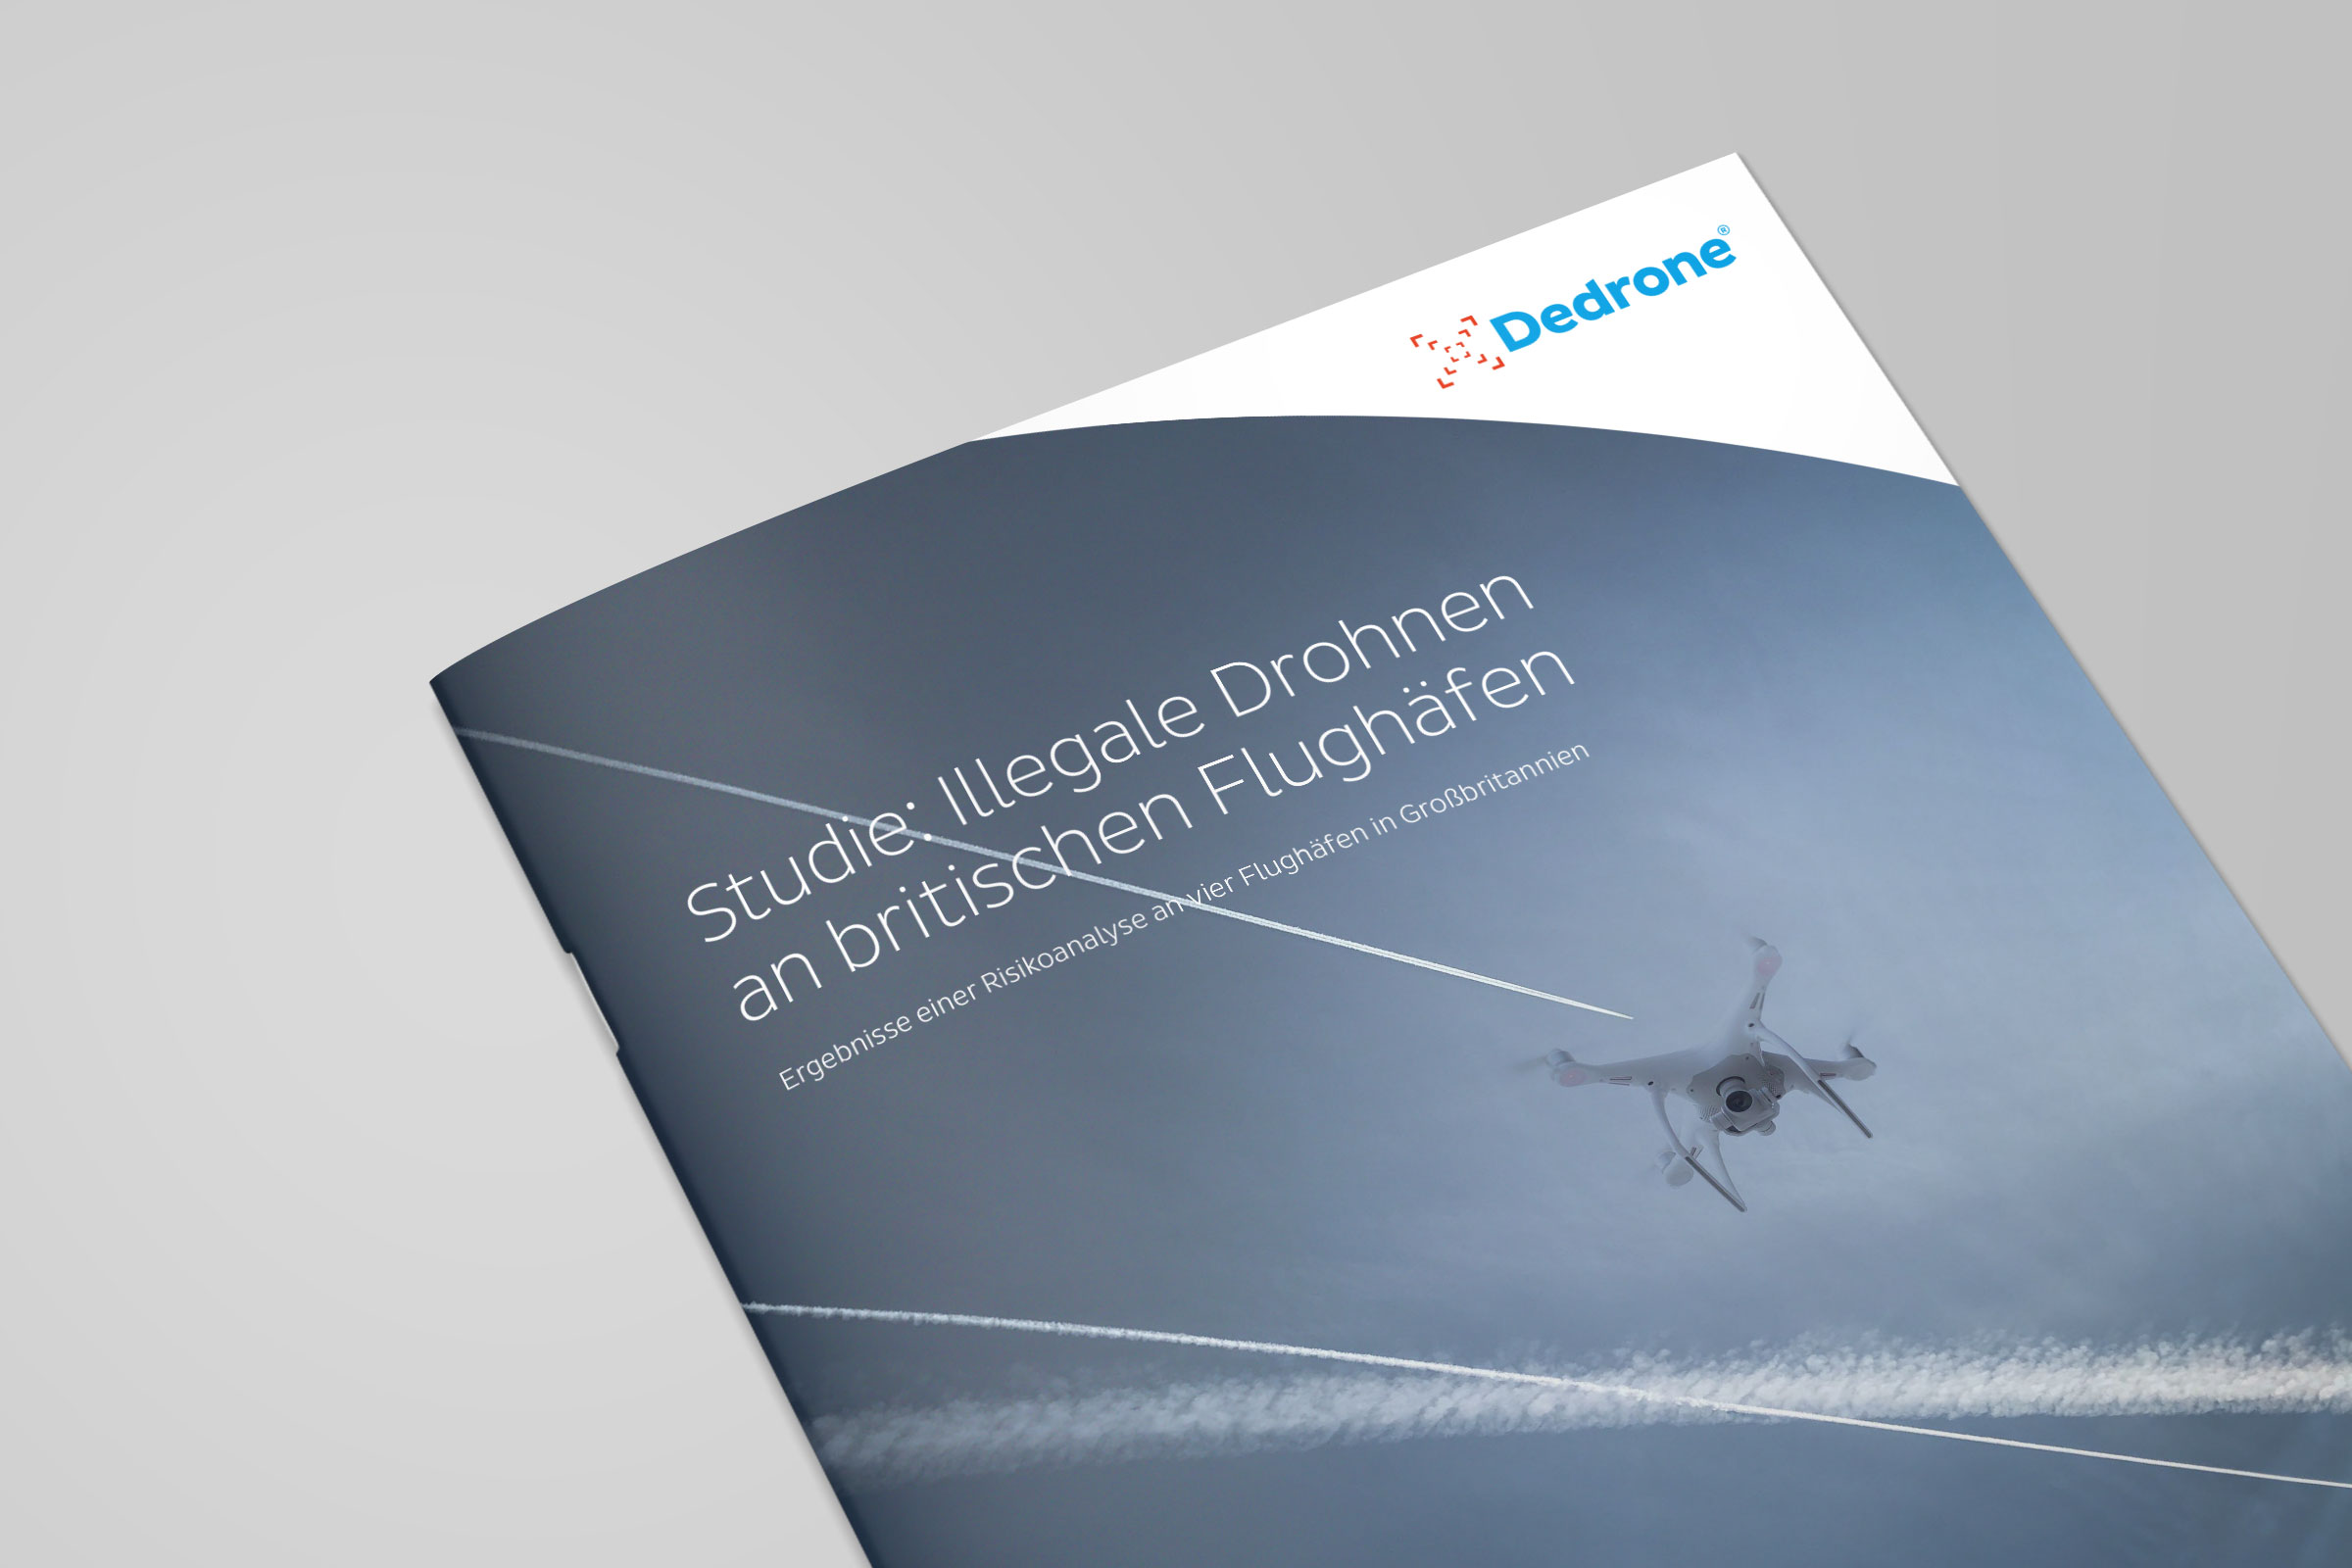 dedrone-whitepaper-cover-big-airspace-activity-study-DE